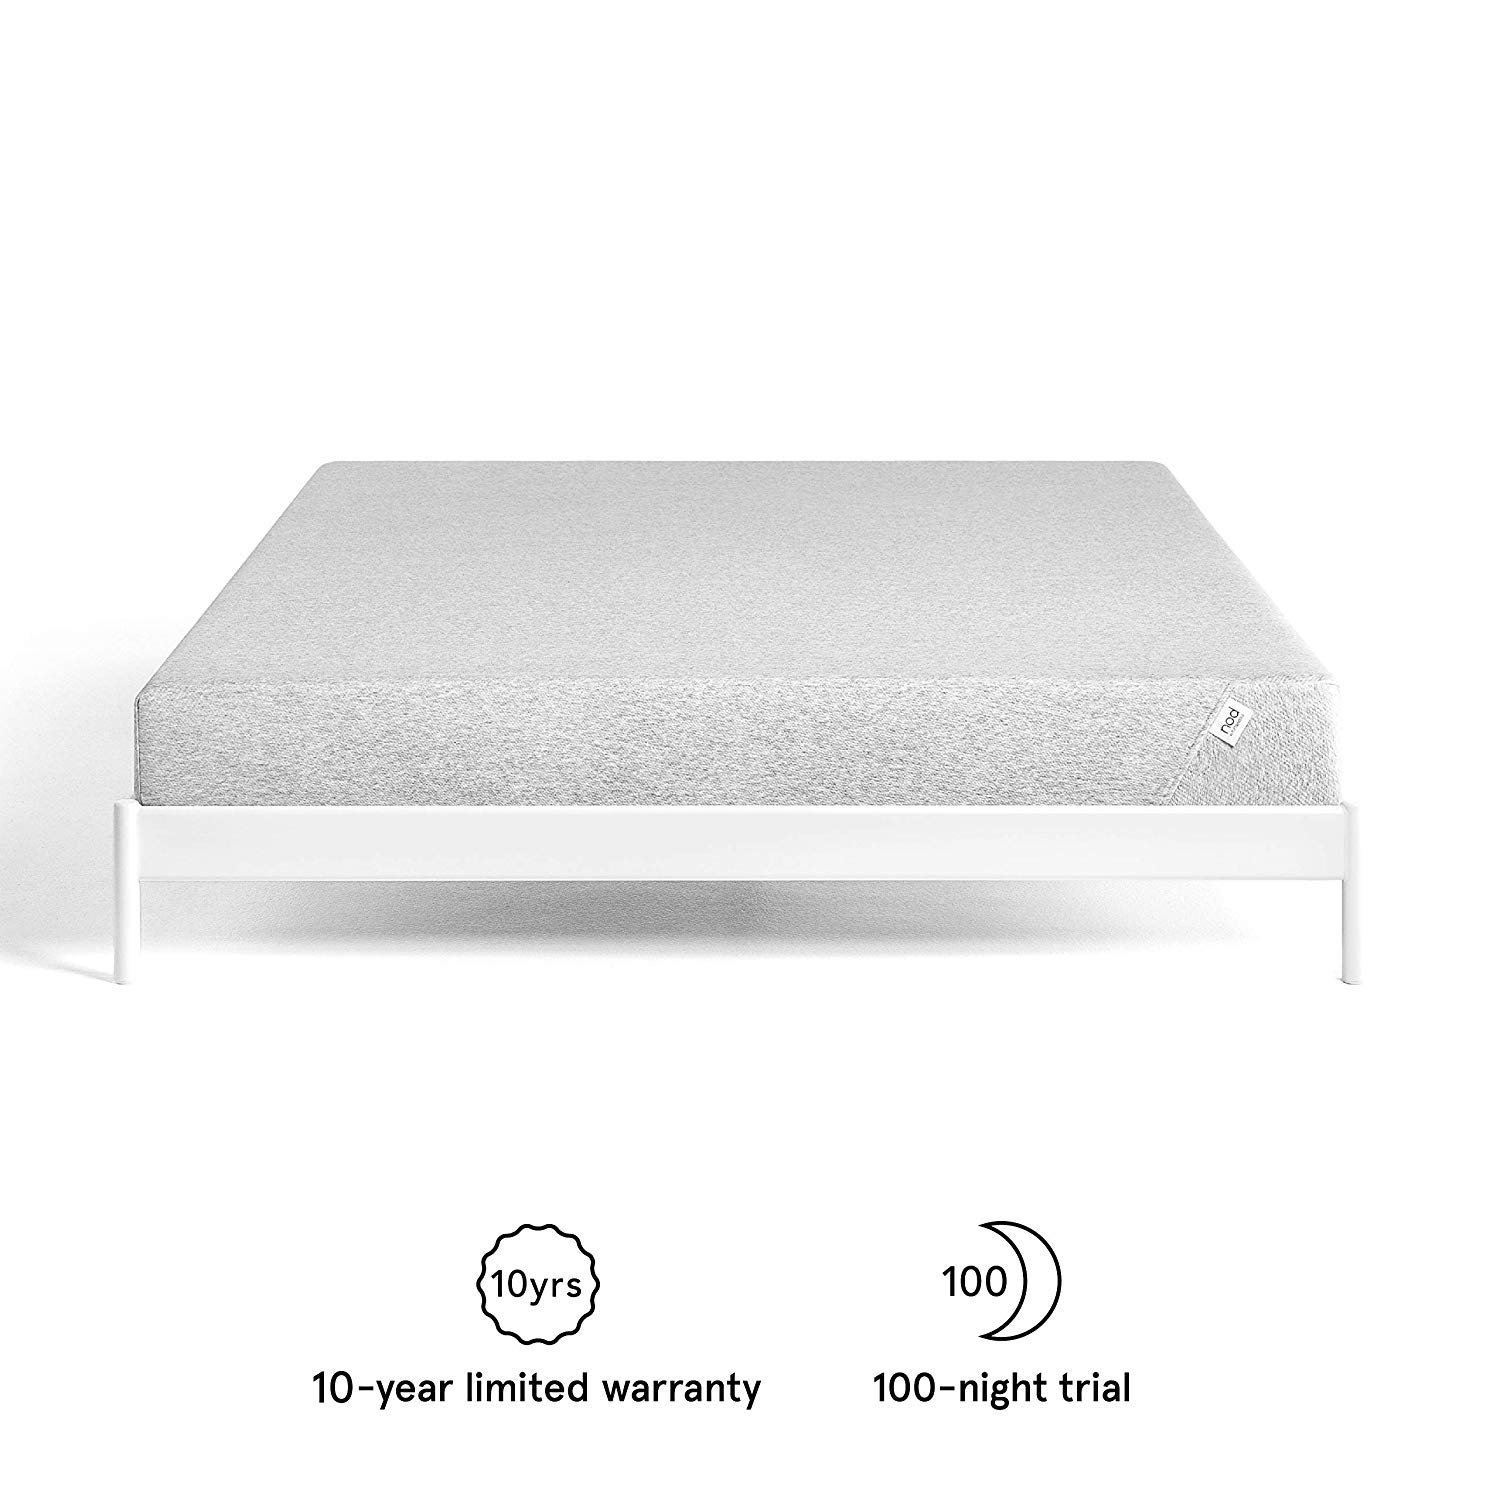 Nod by Tuft & Needle Queen Mattress Review